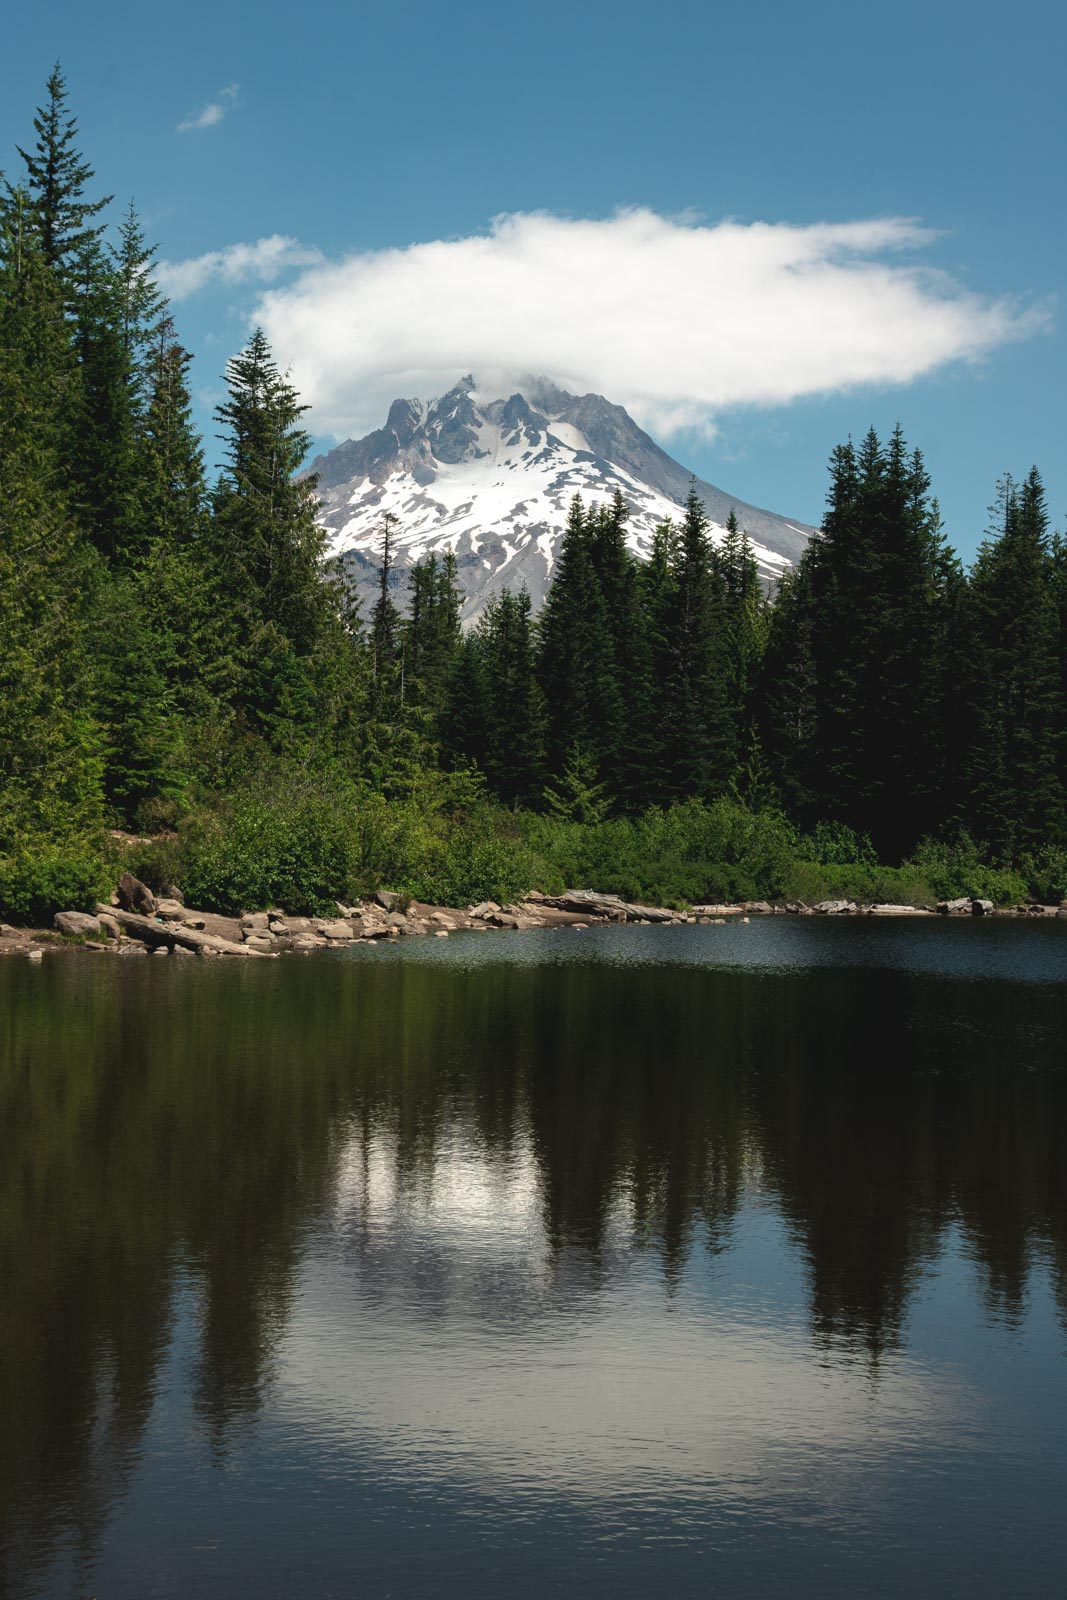 Tom Dick and Harry mountain - one of the best hikes in Oregon